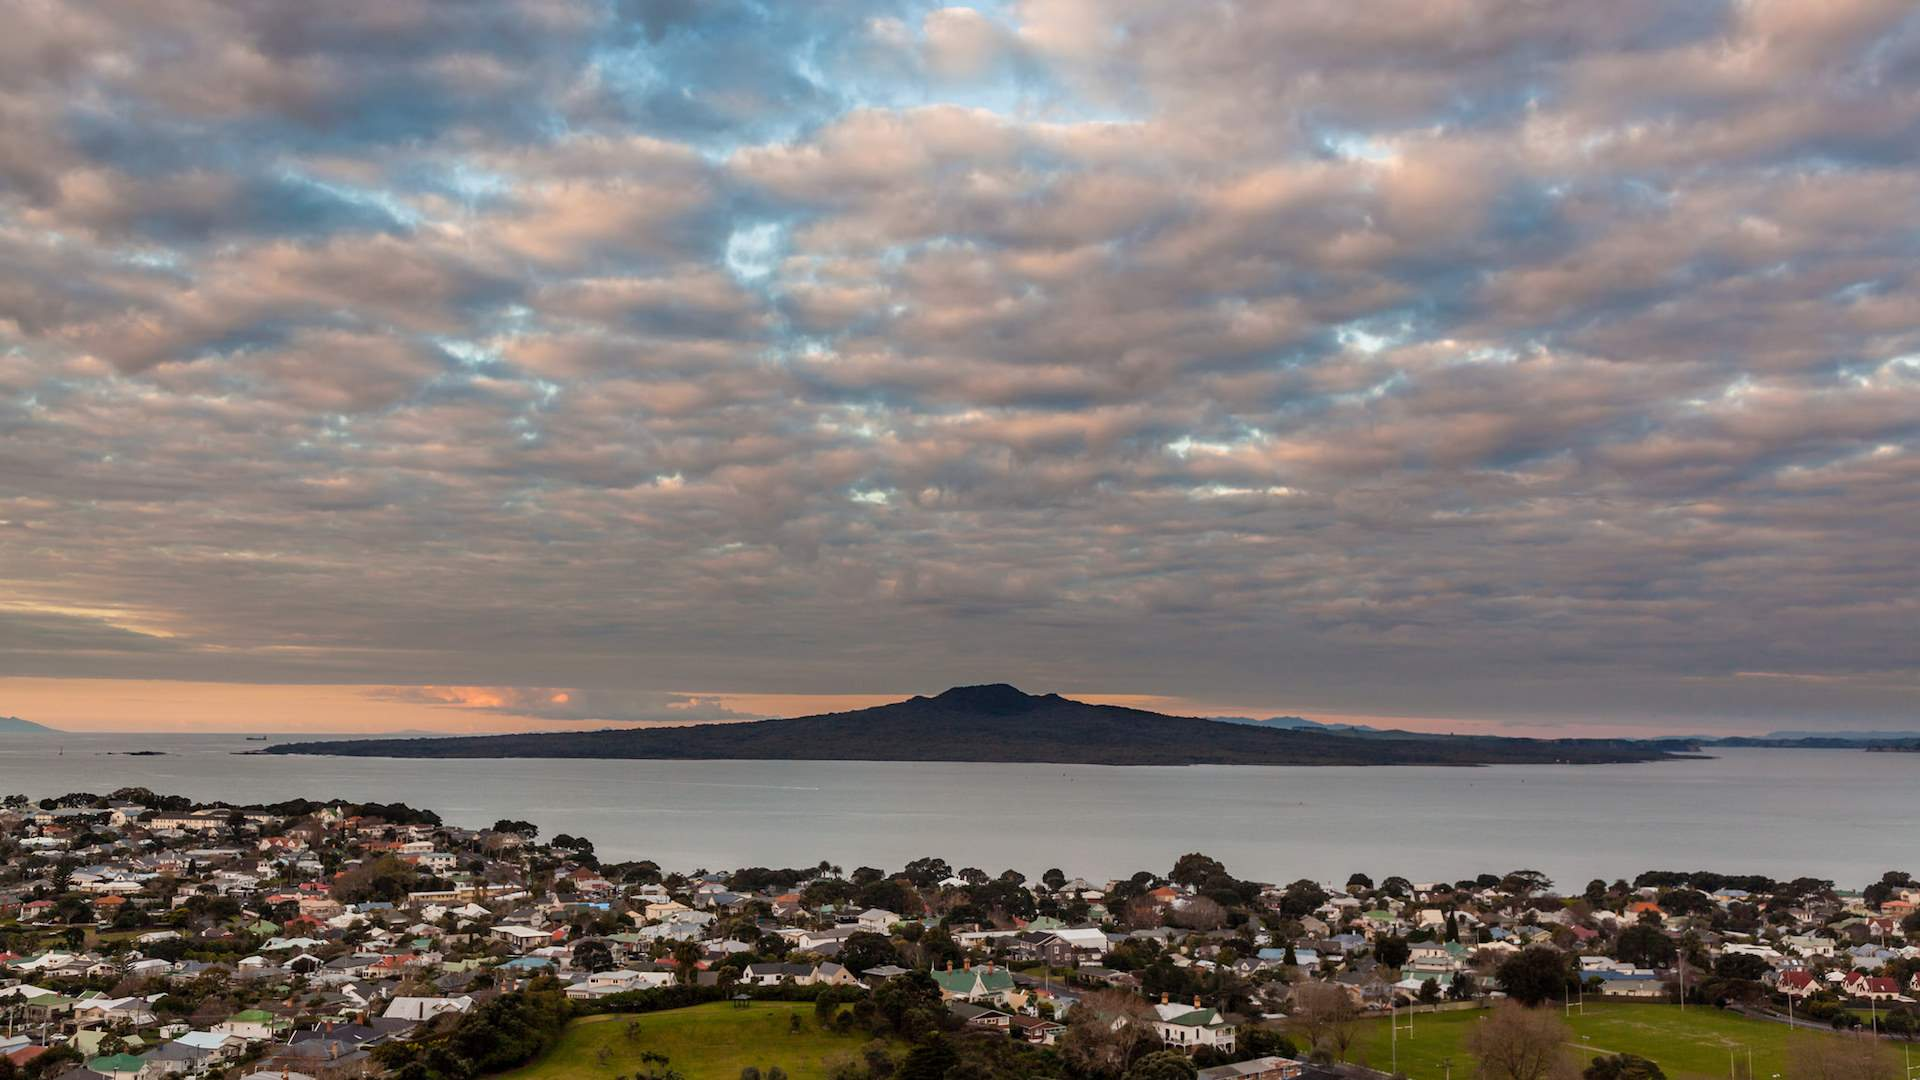 A Commercial Zipline Is Being Proposed for Rangitoto Island